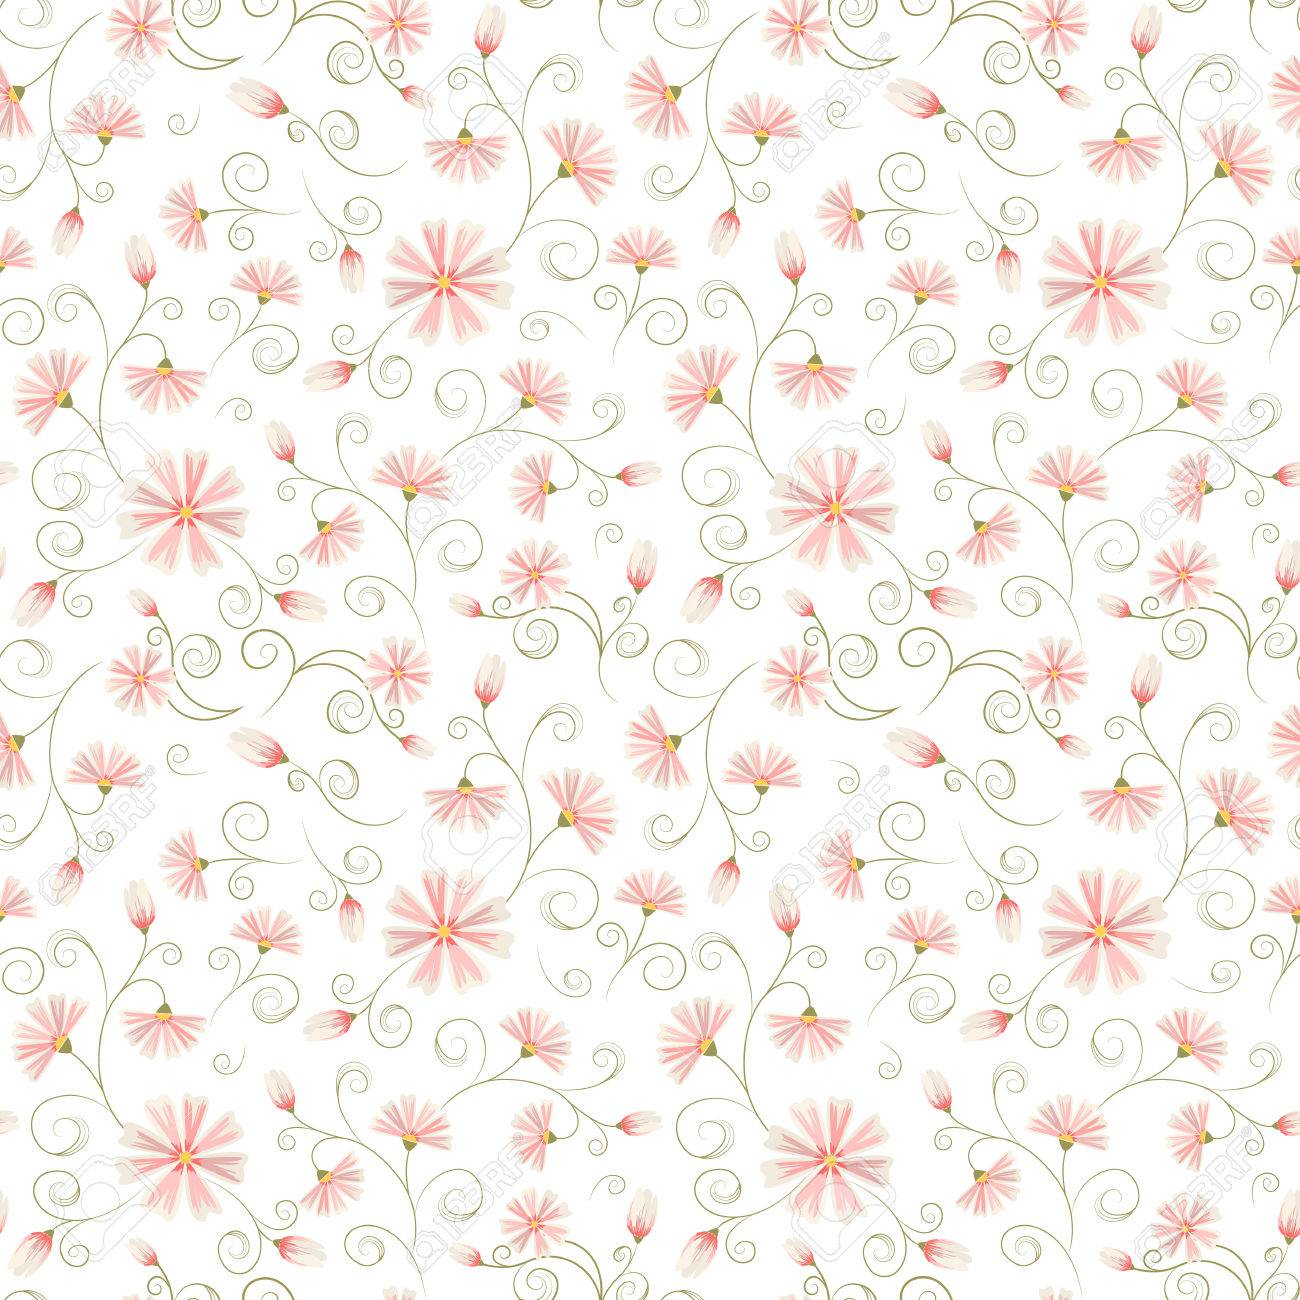 Seamless Daisy Flower Pattern On White Background Frizzy Ornate